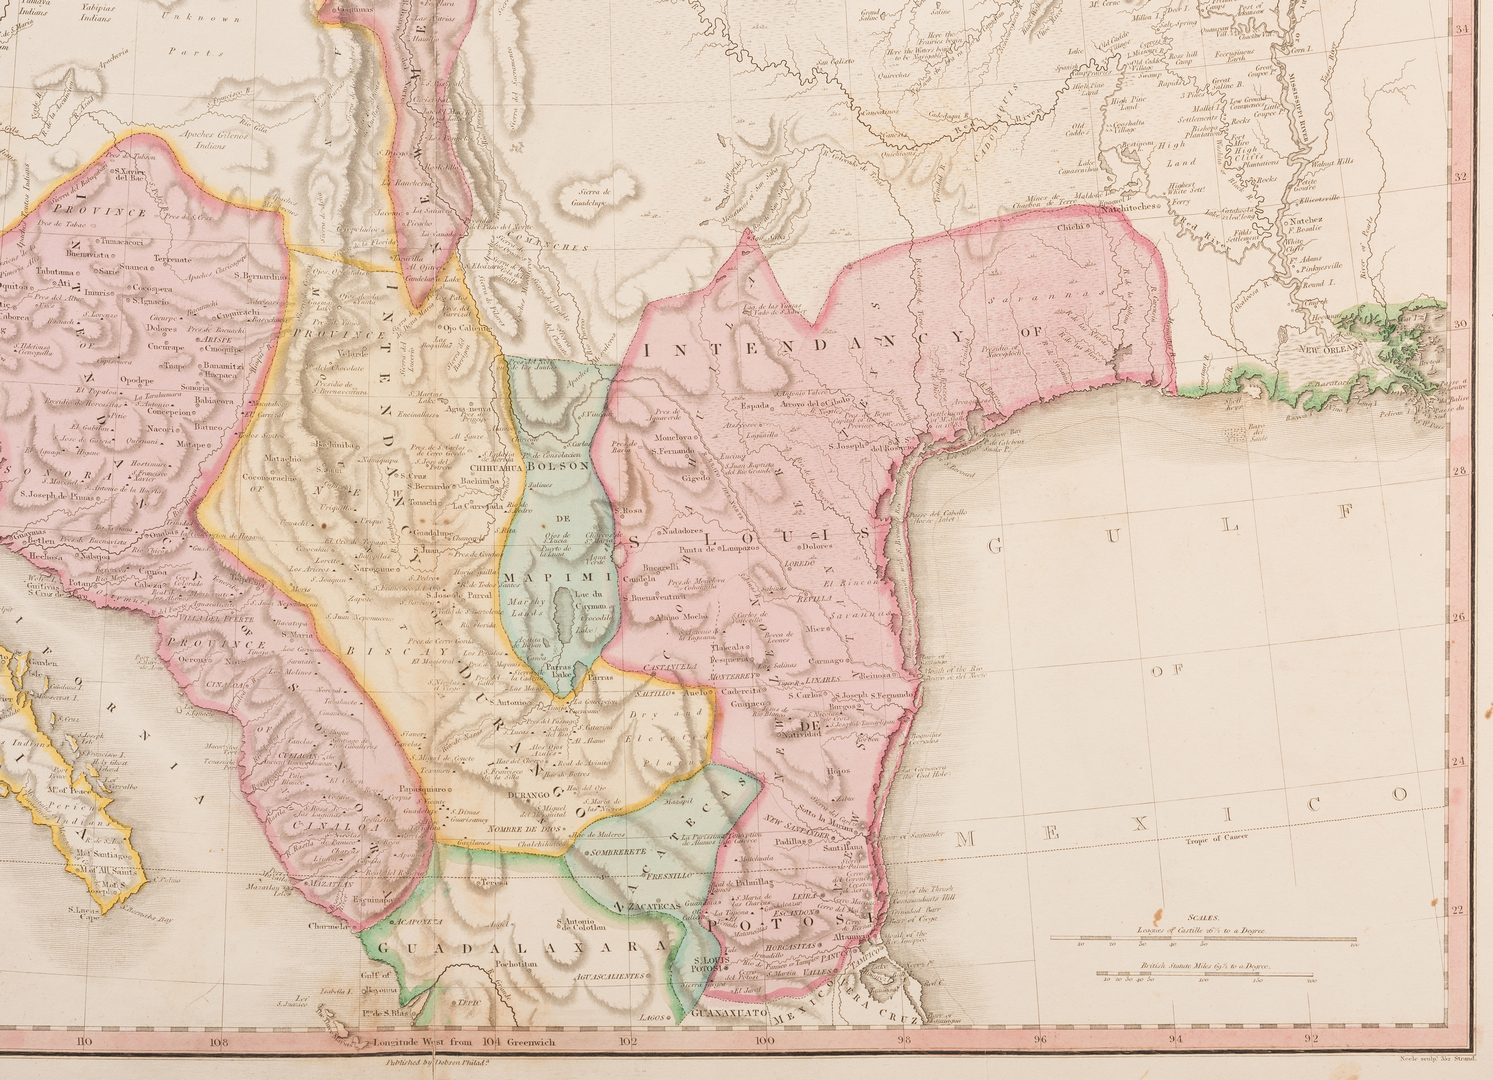 Lot 538: Spanish Dominions of N. Amer. Map, 1818 Pinkerton